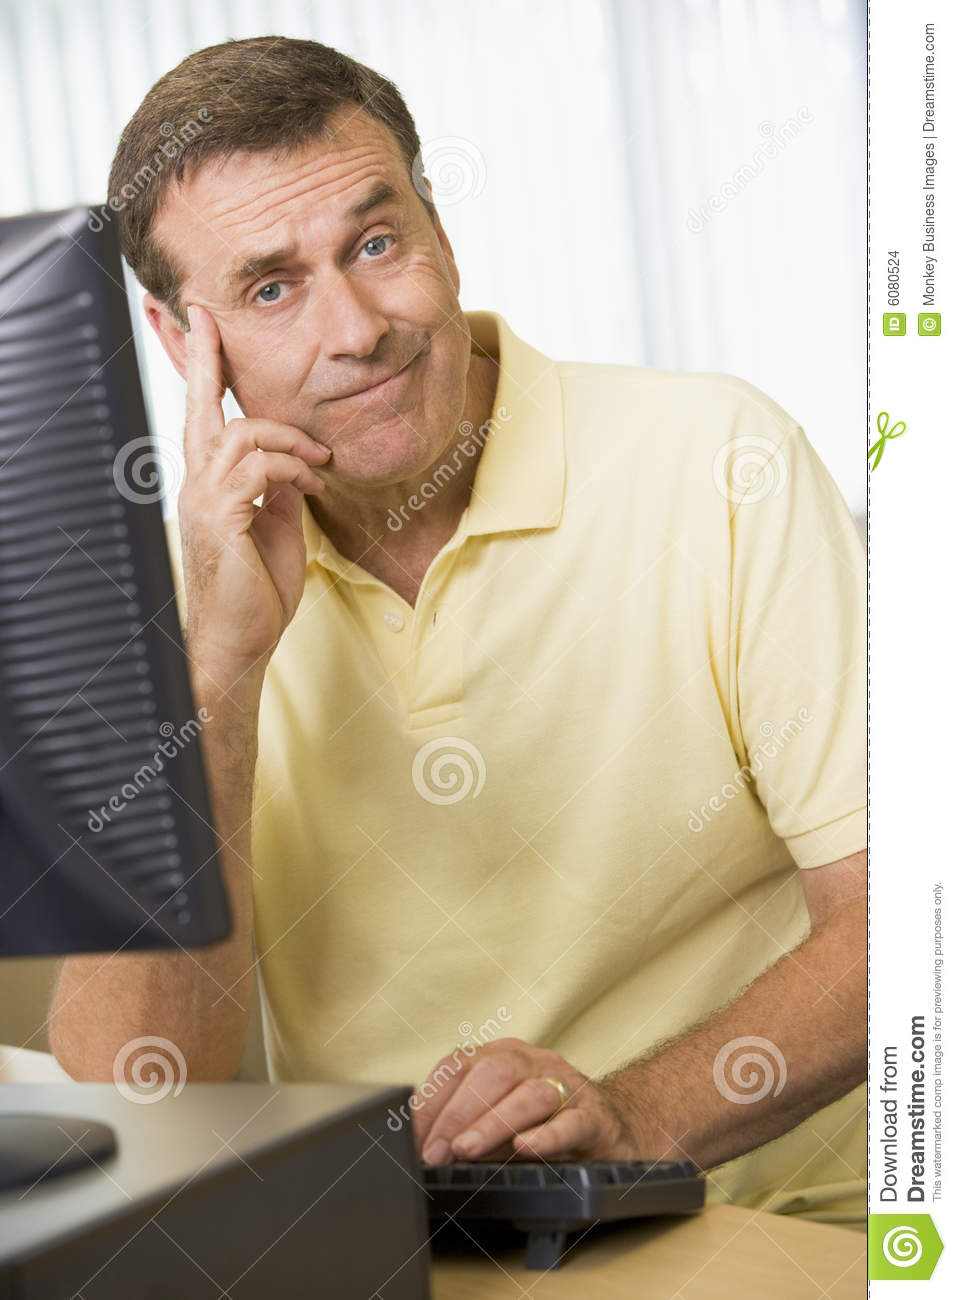 Confused Man On A Computer Stock Images - Image: 6080524